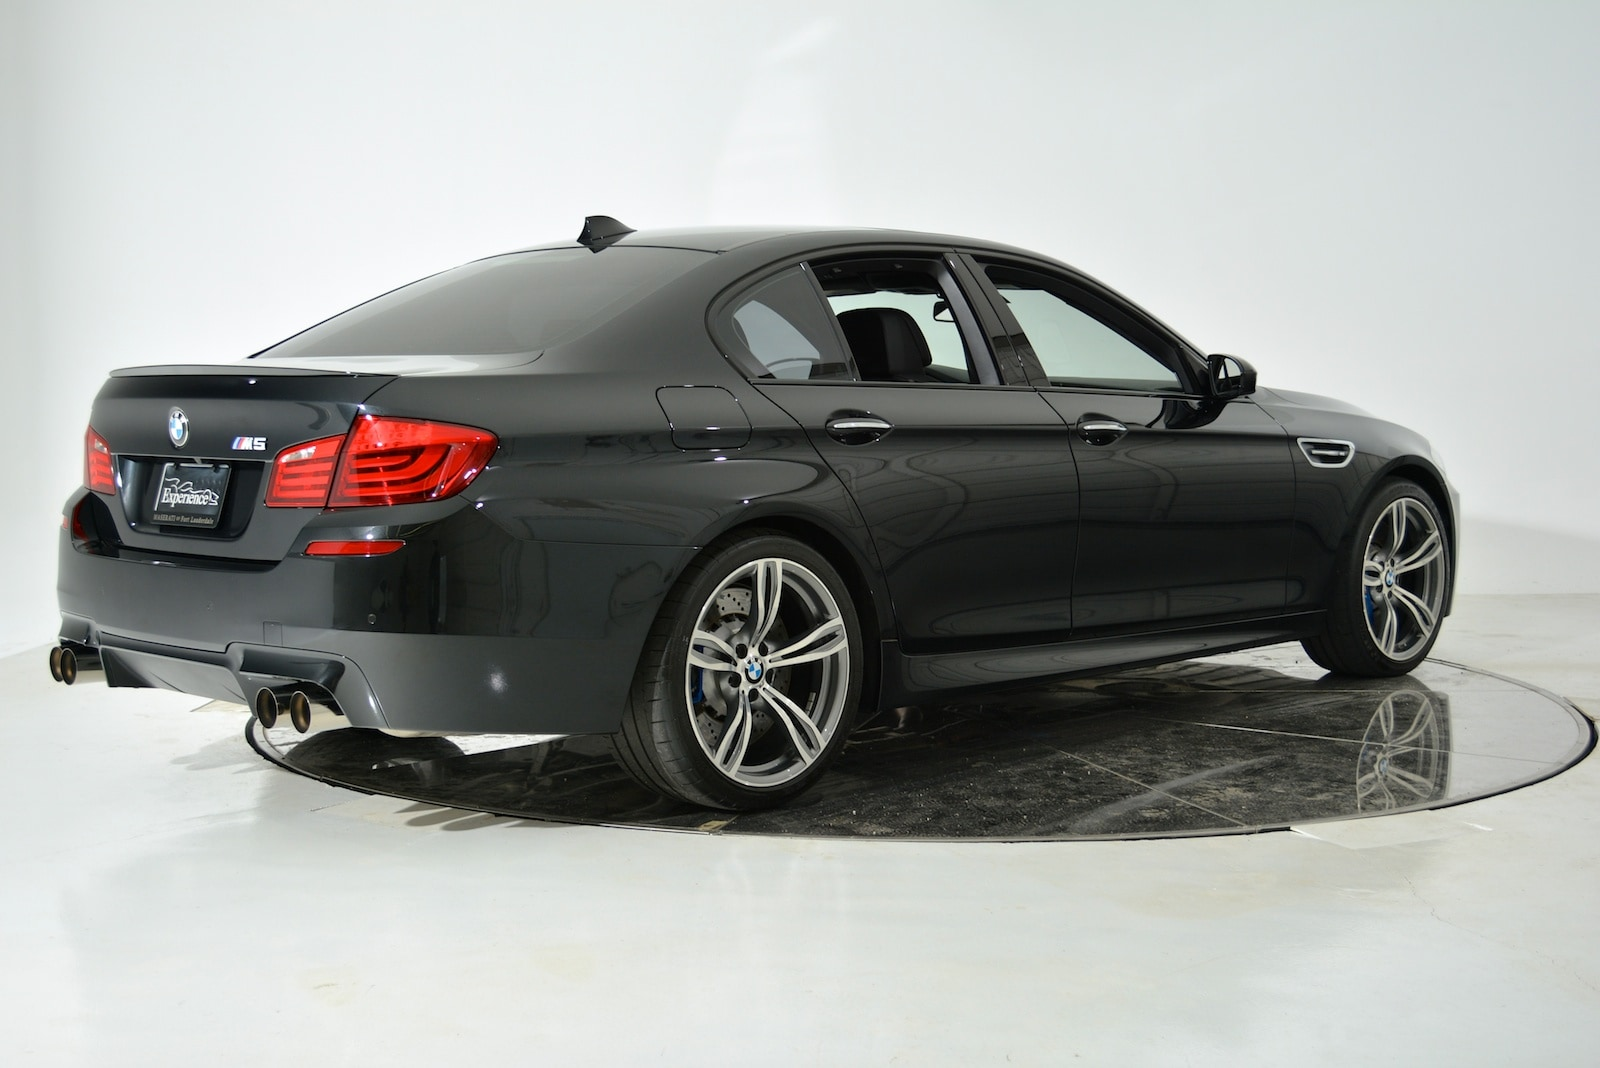 used 2013 bmw m5 for sale fort lauderdale fl. Black Bedroom Furniture Sets. Home Design Ideas